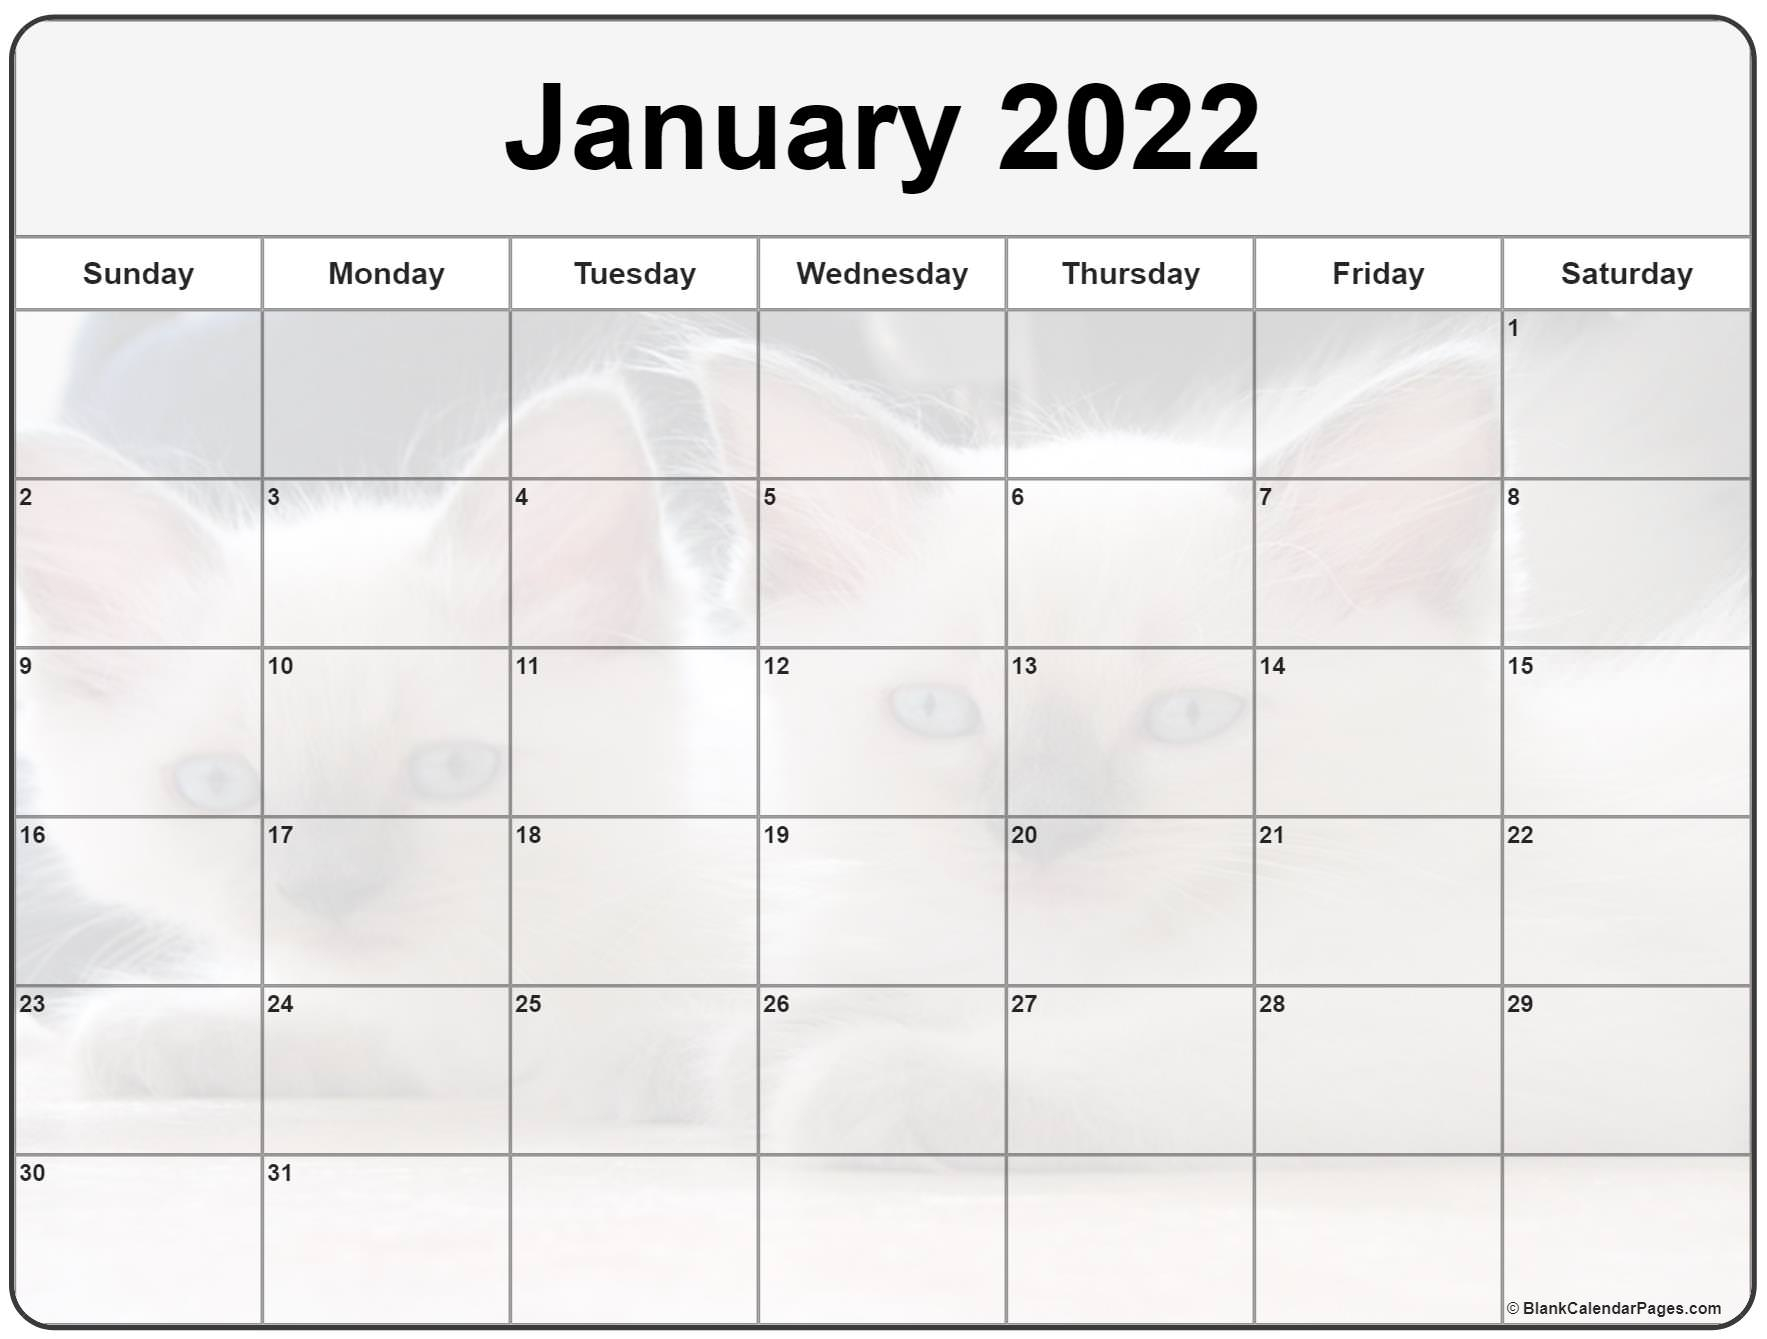 Collection Of January 2022 Photo Calendars With Image Filters. Pertaining To Printable Calendars January 2022 To December 2022